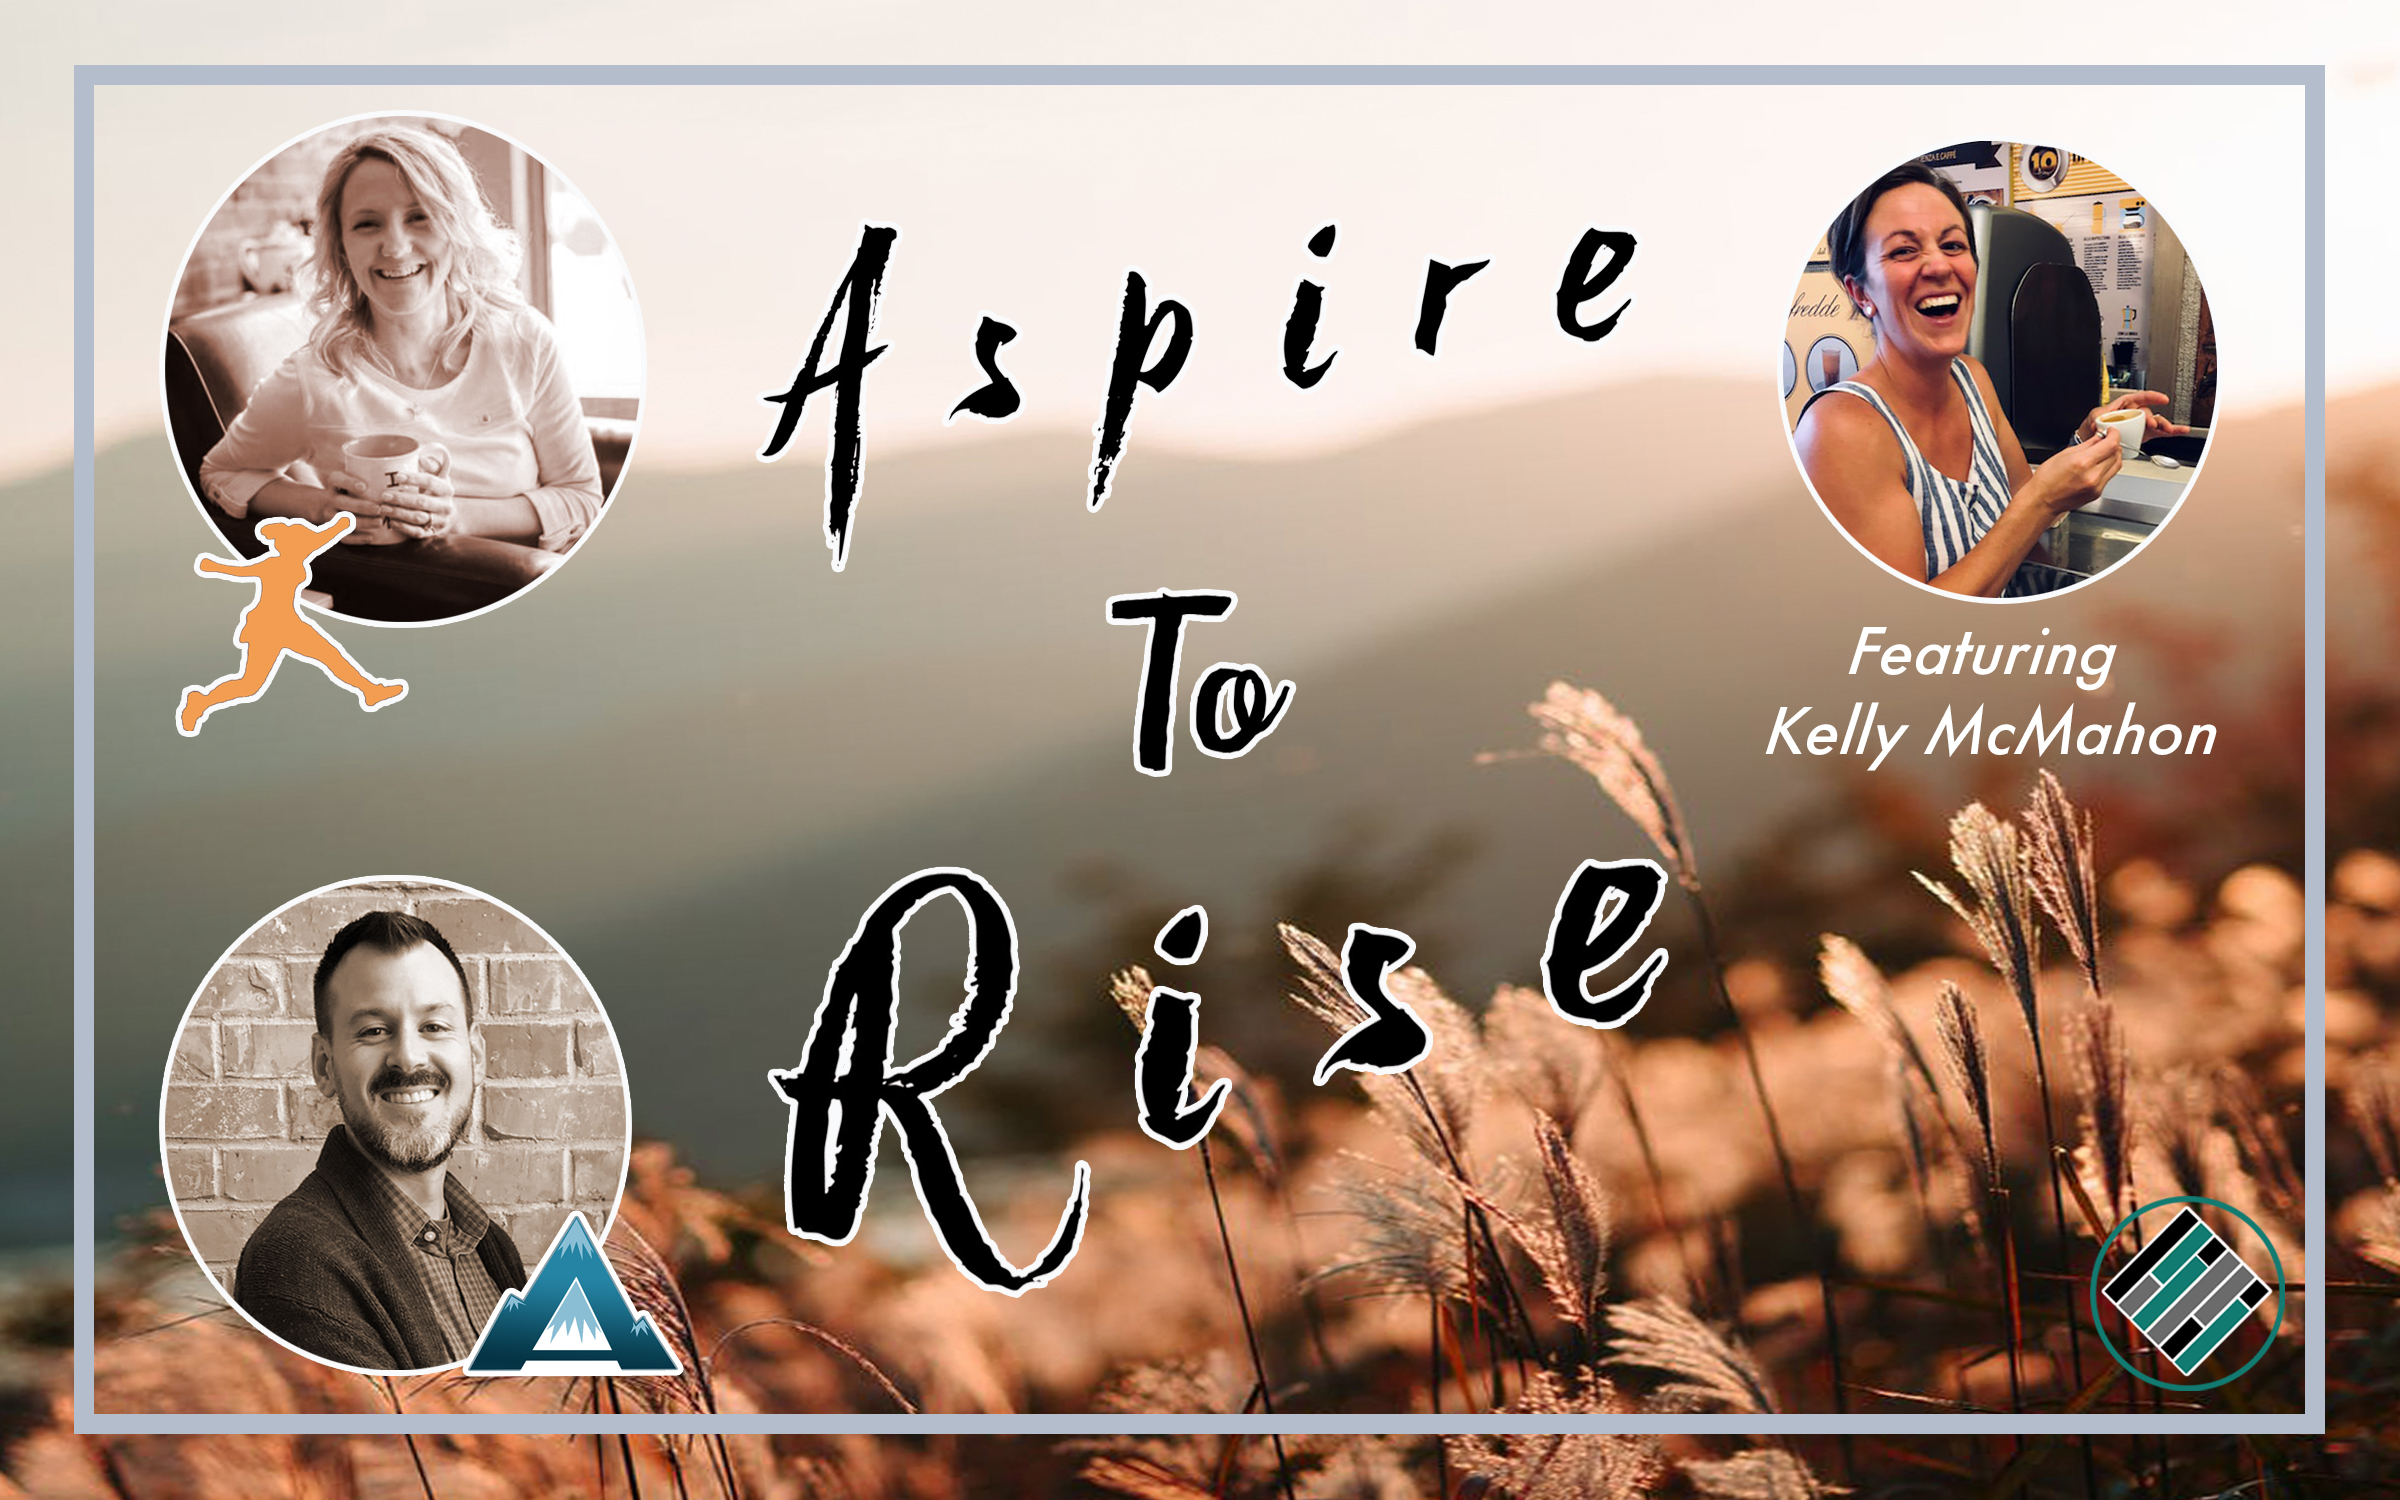 Aspire to RISE, Aspire: The Leadership Development Podcast, Sarah Johnson, #AspireLead